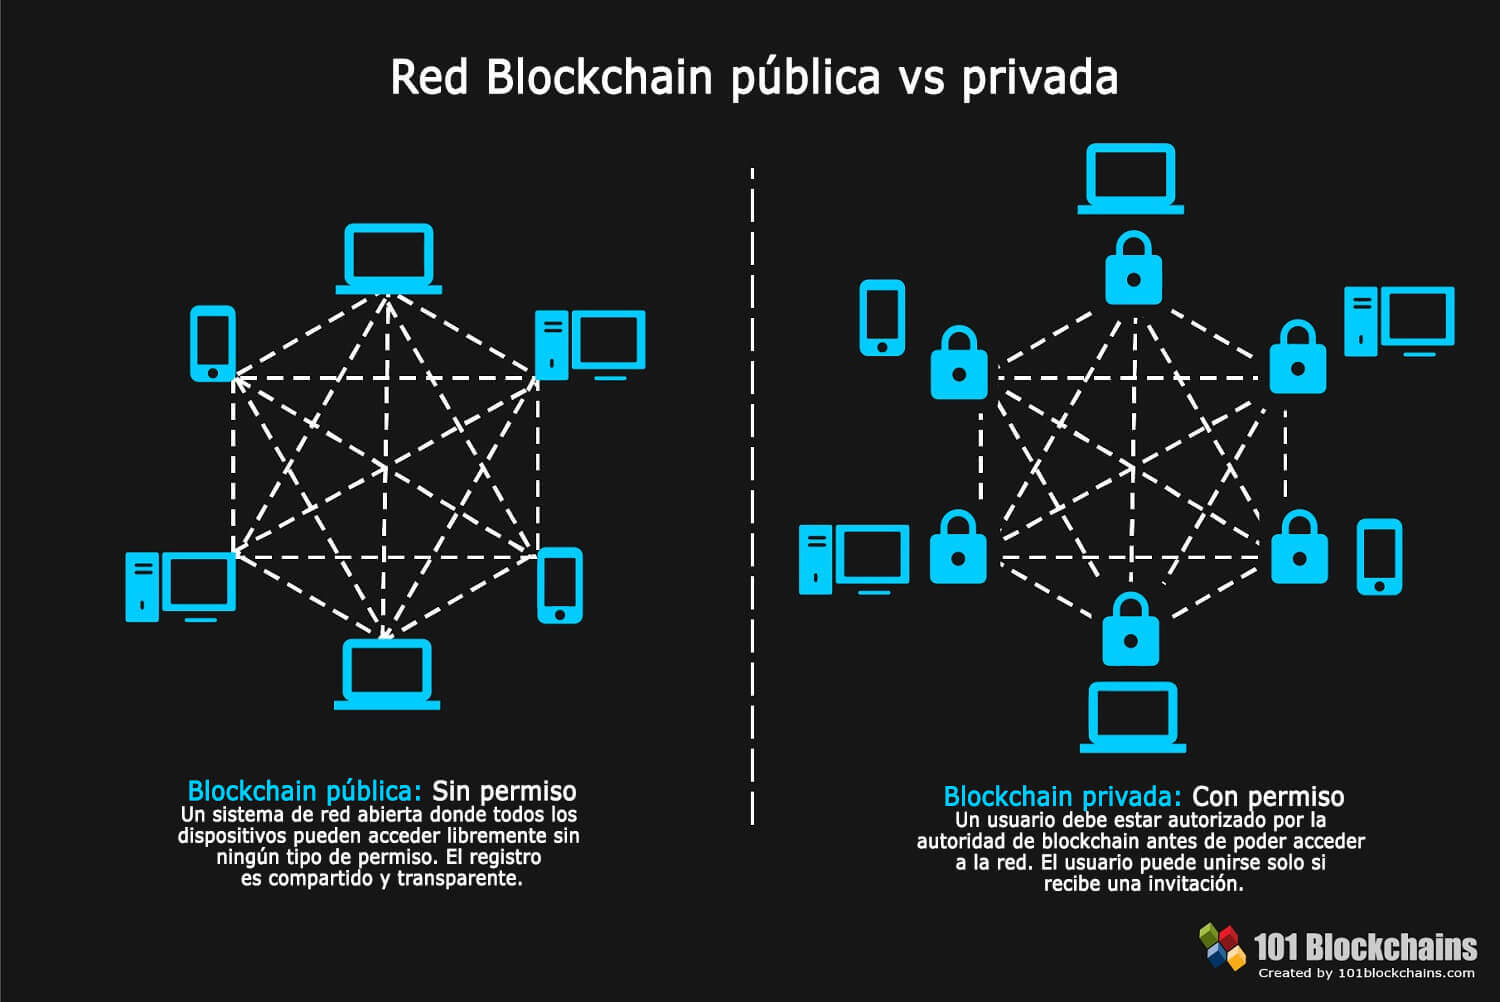 Red Blockchain pública vs privada